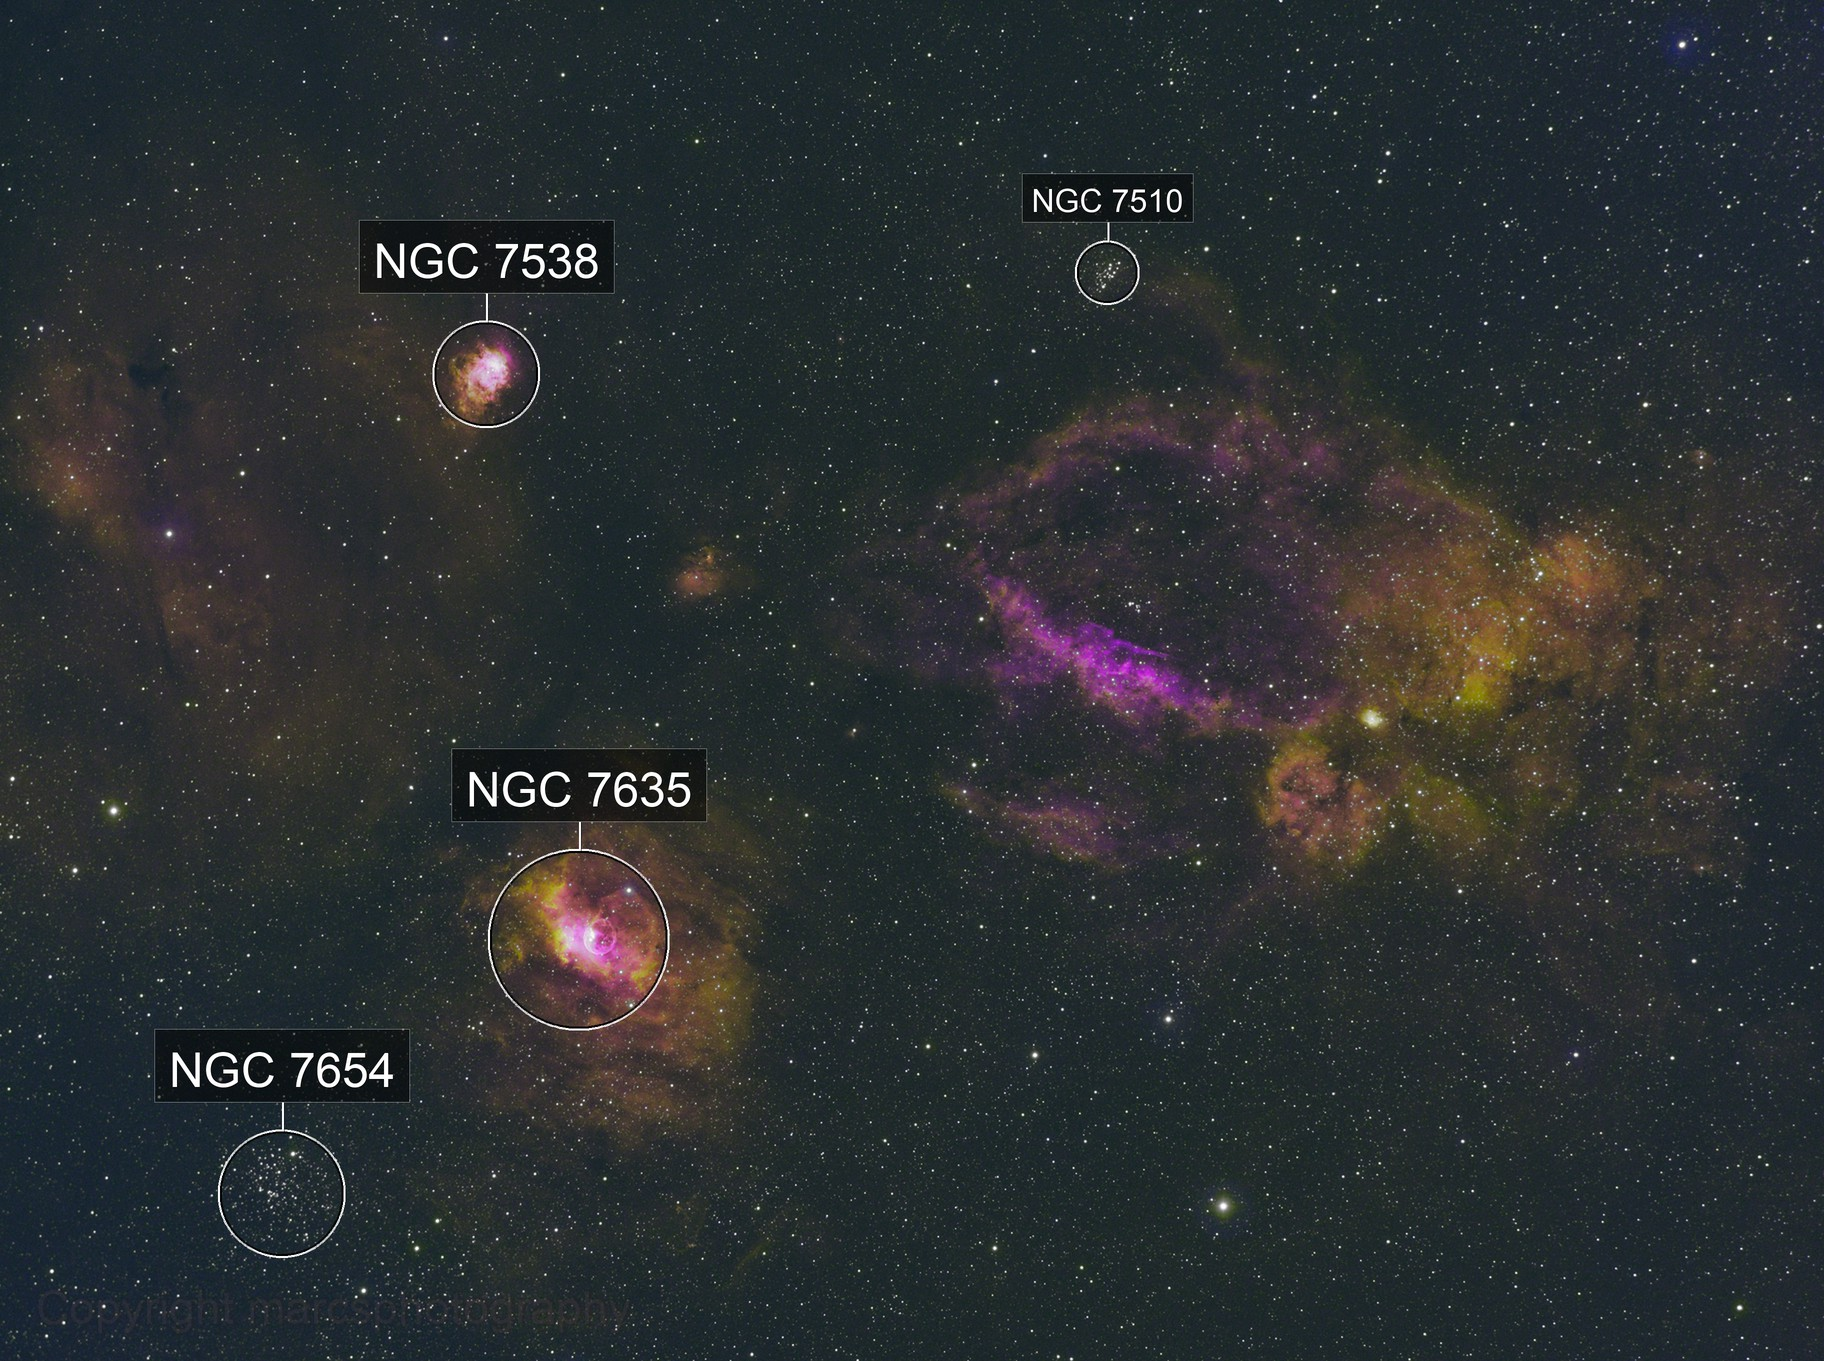 Lobster Claw Nebula, Bubble Nebula, NGC 7538 and more in HSO